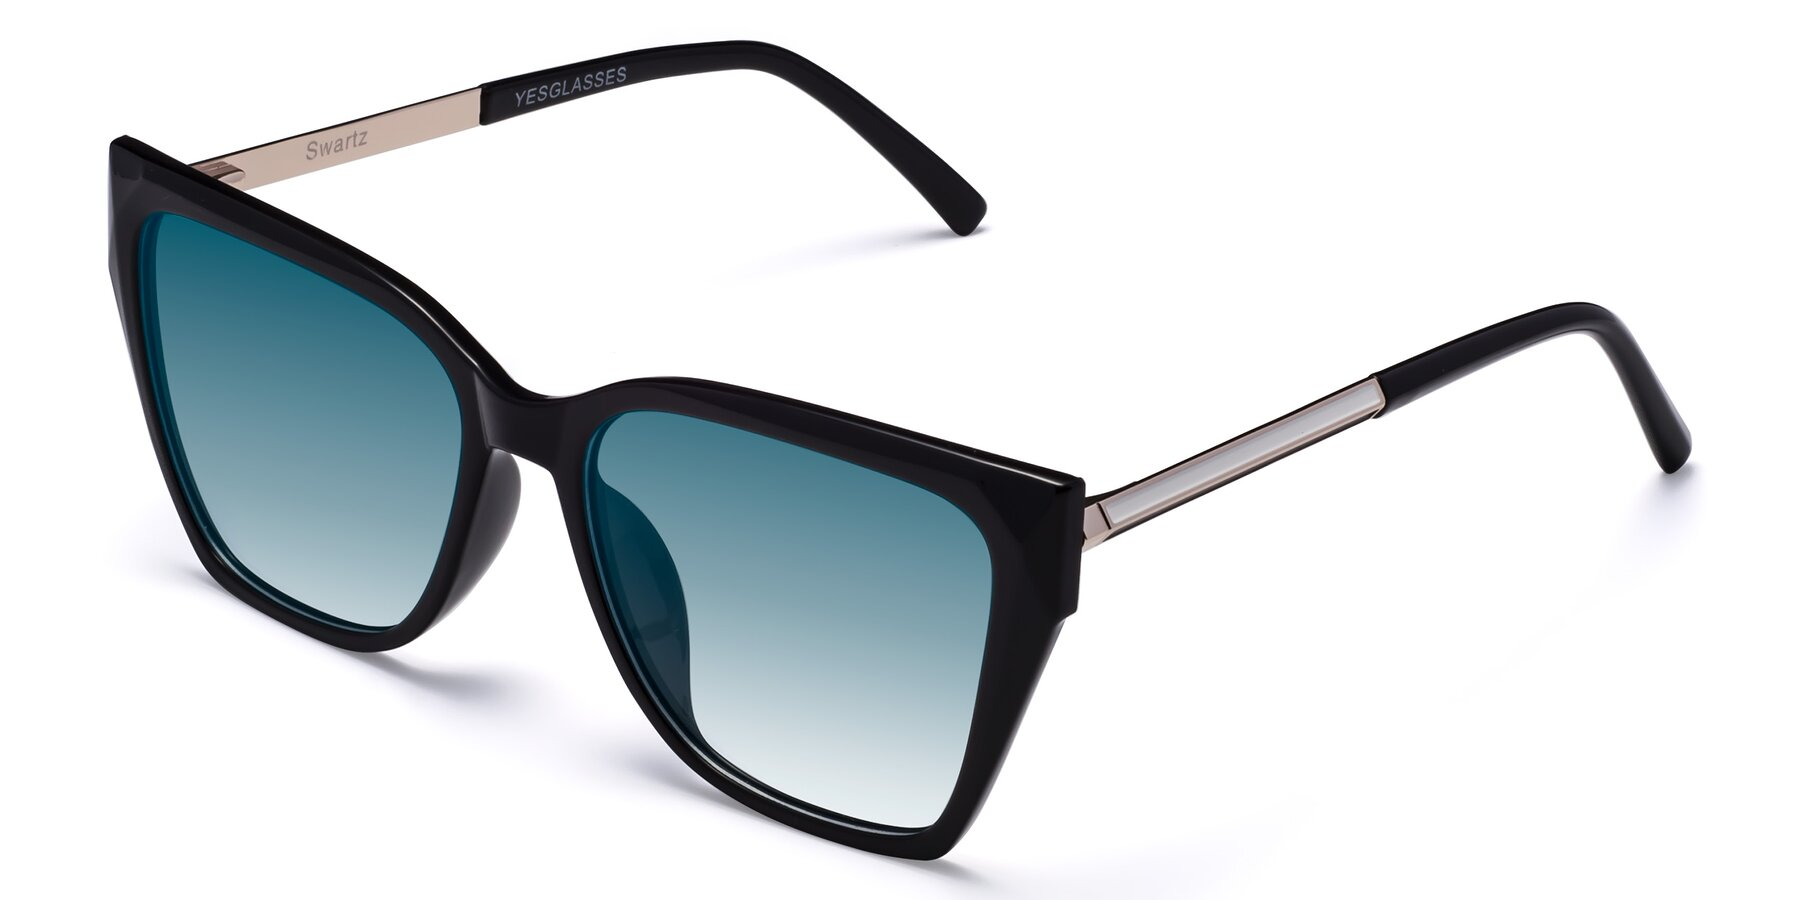 Angle of Swartz in Black with Blue Gradient Lenses